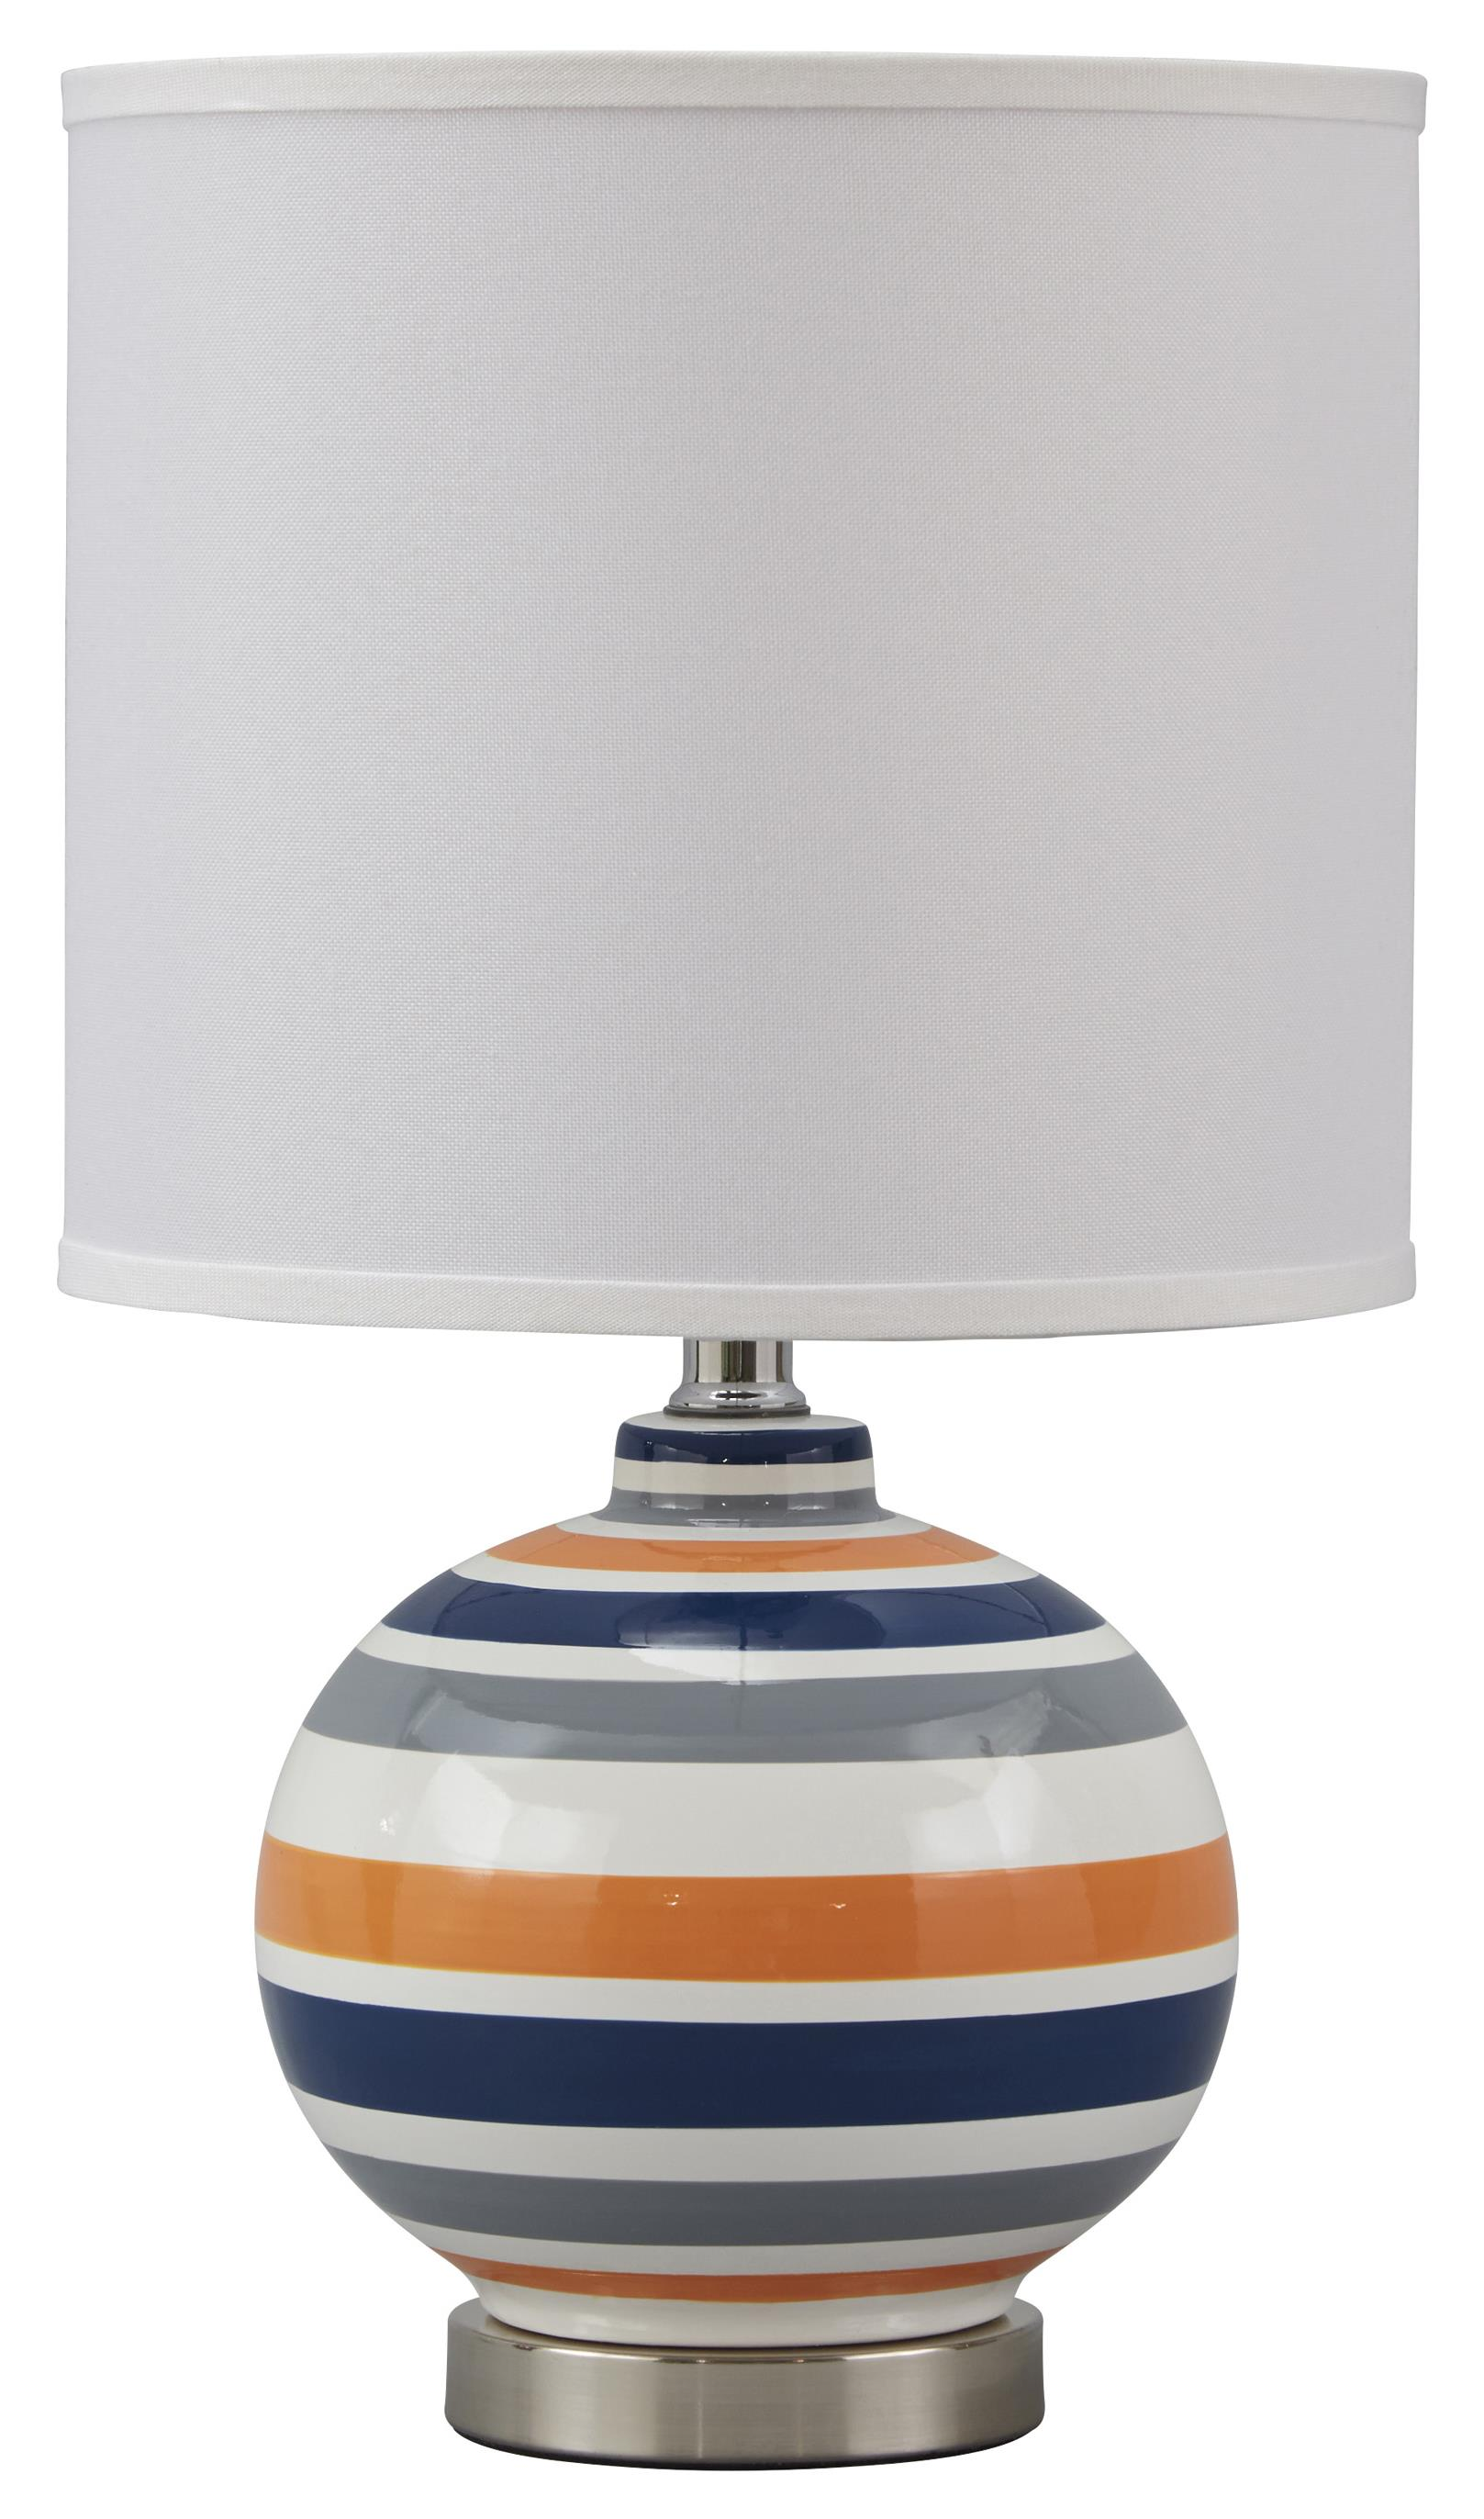 Signature Design by Ashley Lamps - Contemporary Sirene Ceramic Table Lamp - Item Number: L857464